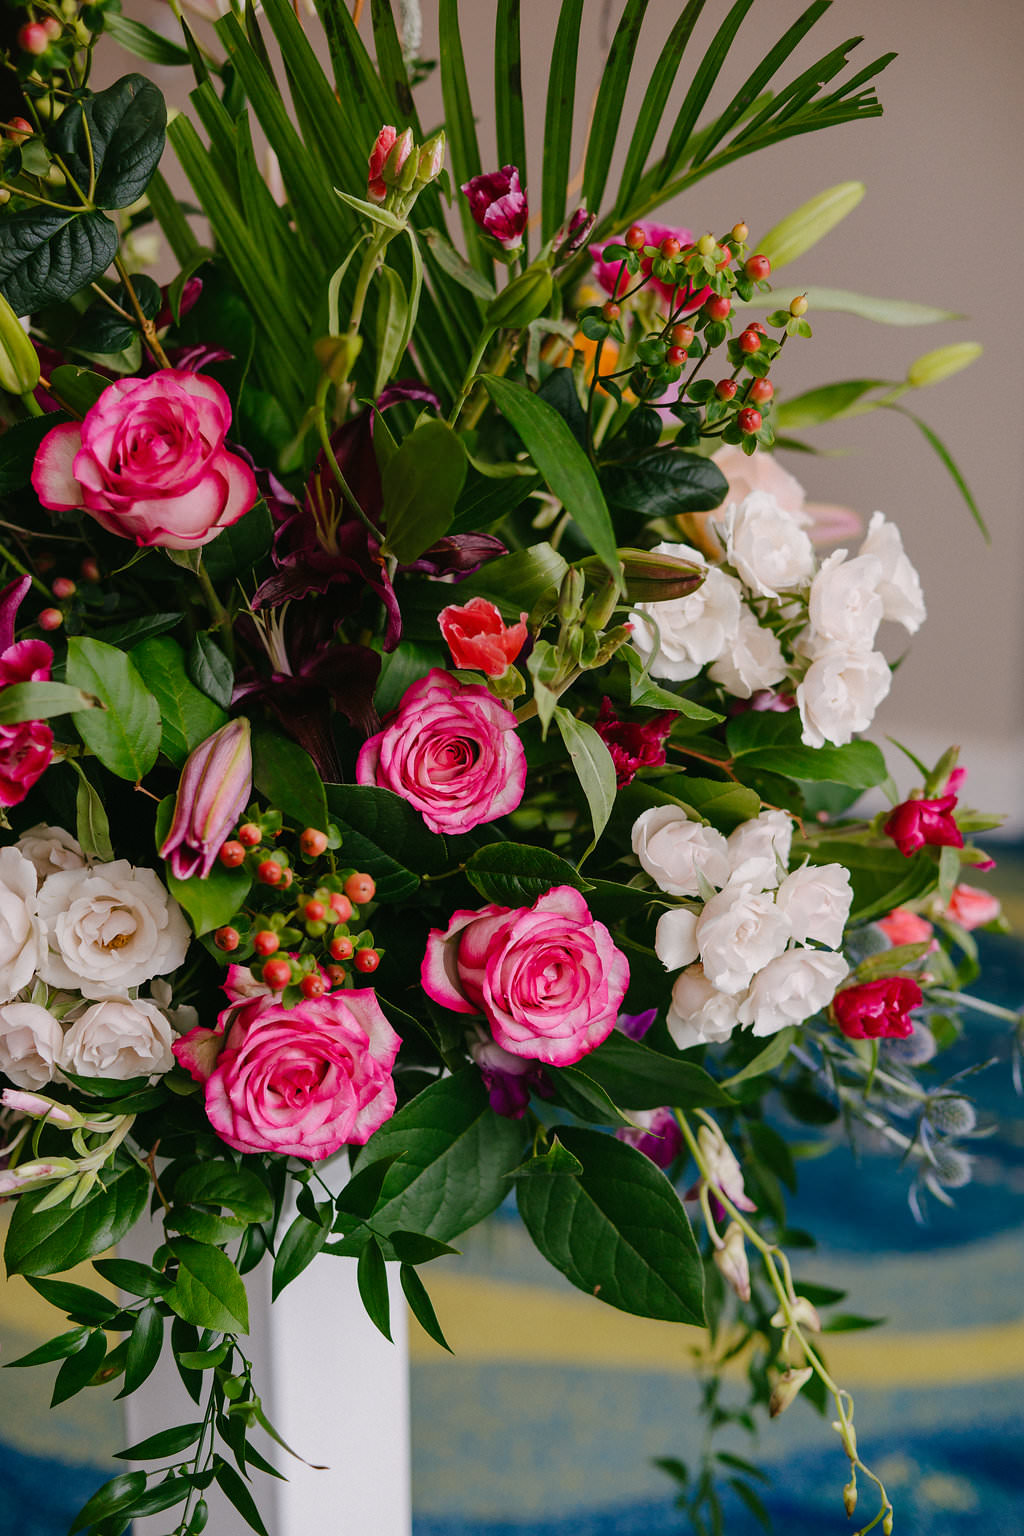 Tropical Inspired Wedding Ceremony Decor, Pink Roses, Berries, White and Greenery Bouquet on White Pedestal | Tampa Bay Wedding Photographer Grind and Press | Special Moments Event Planning